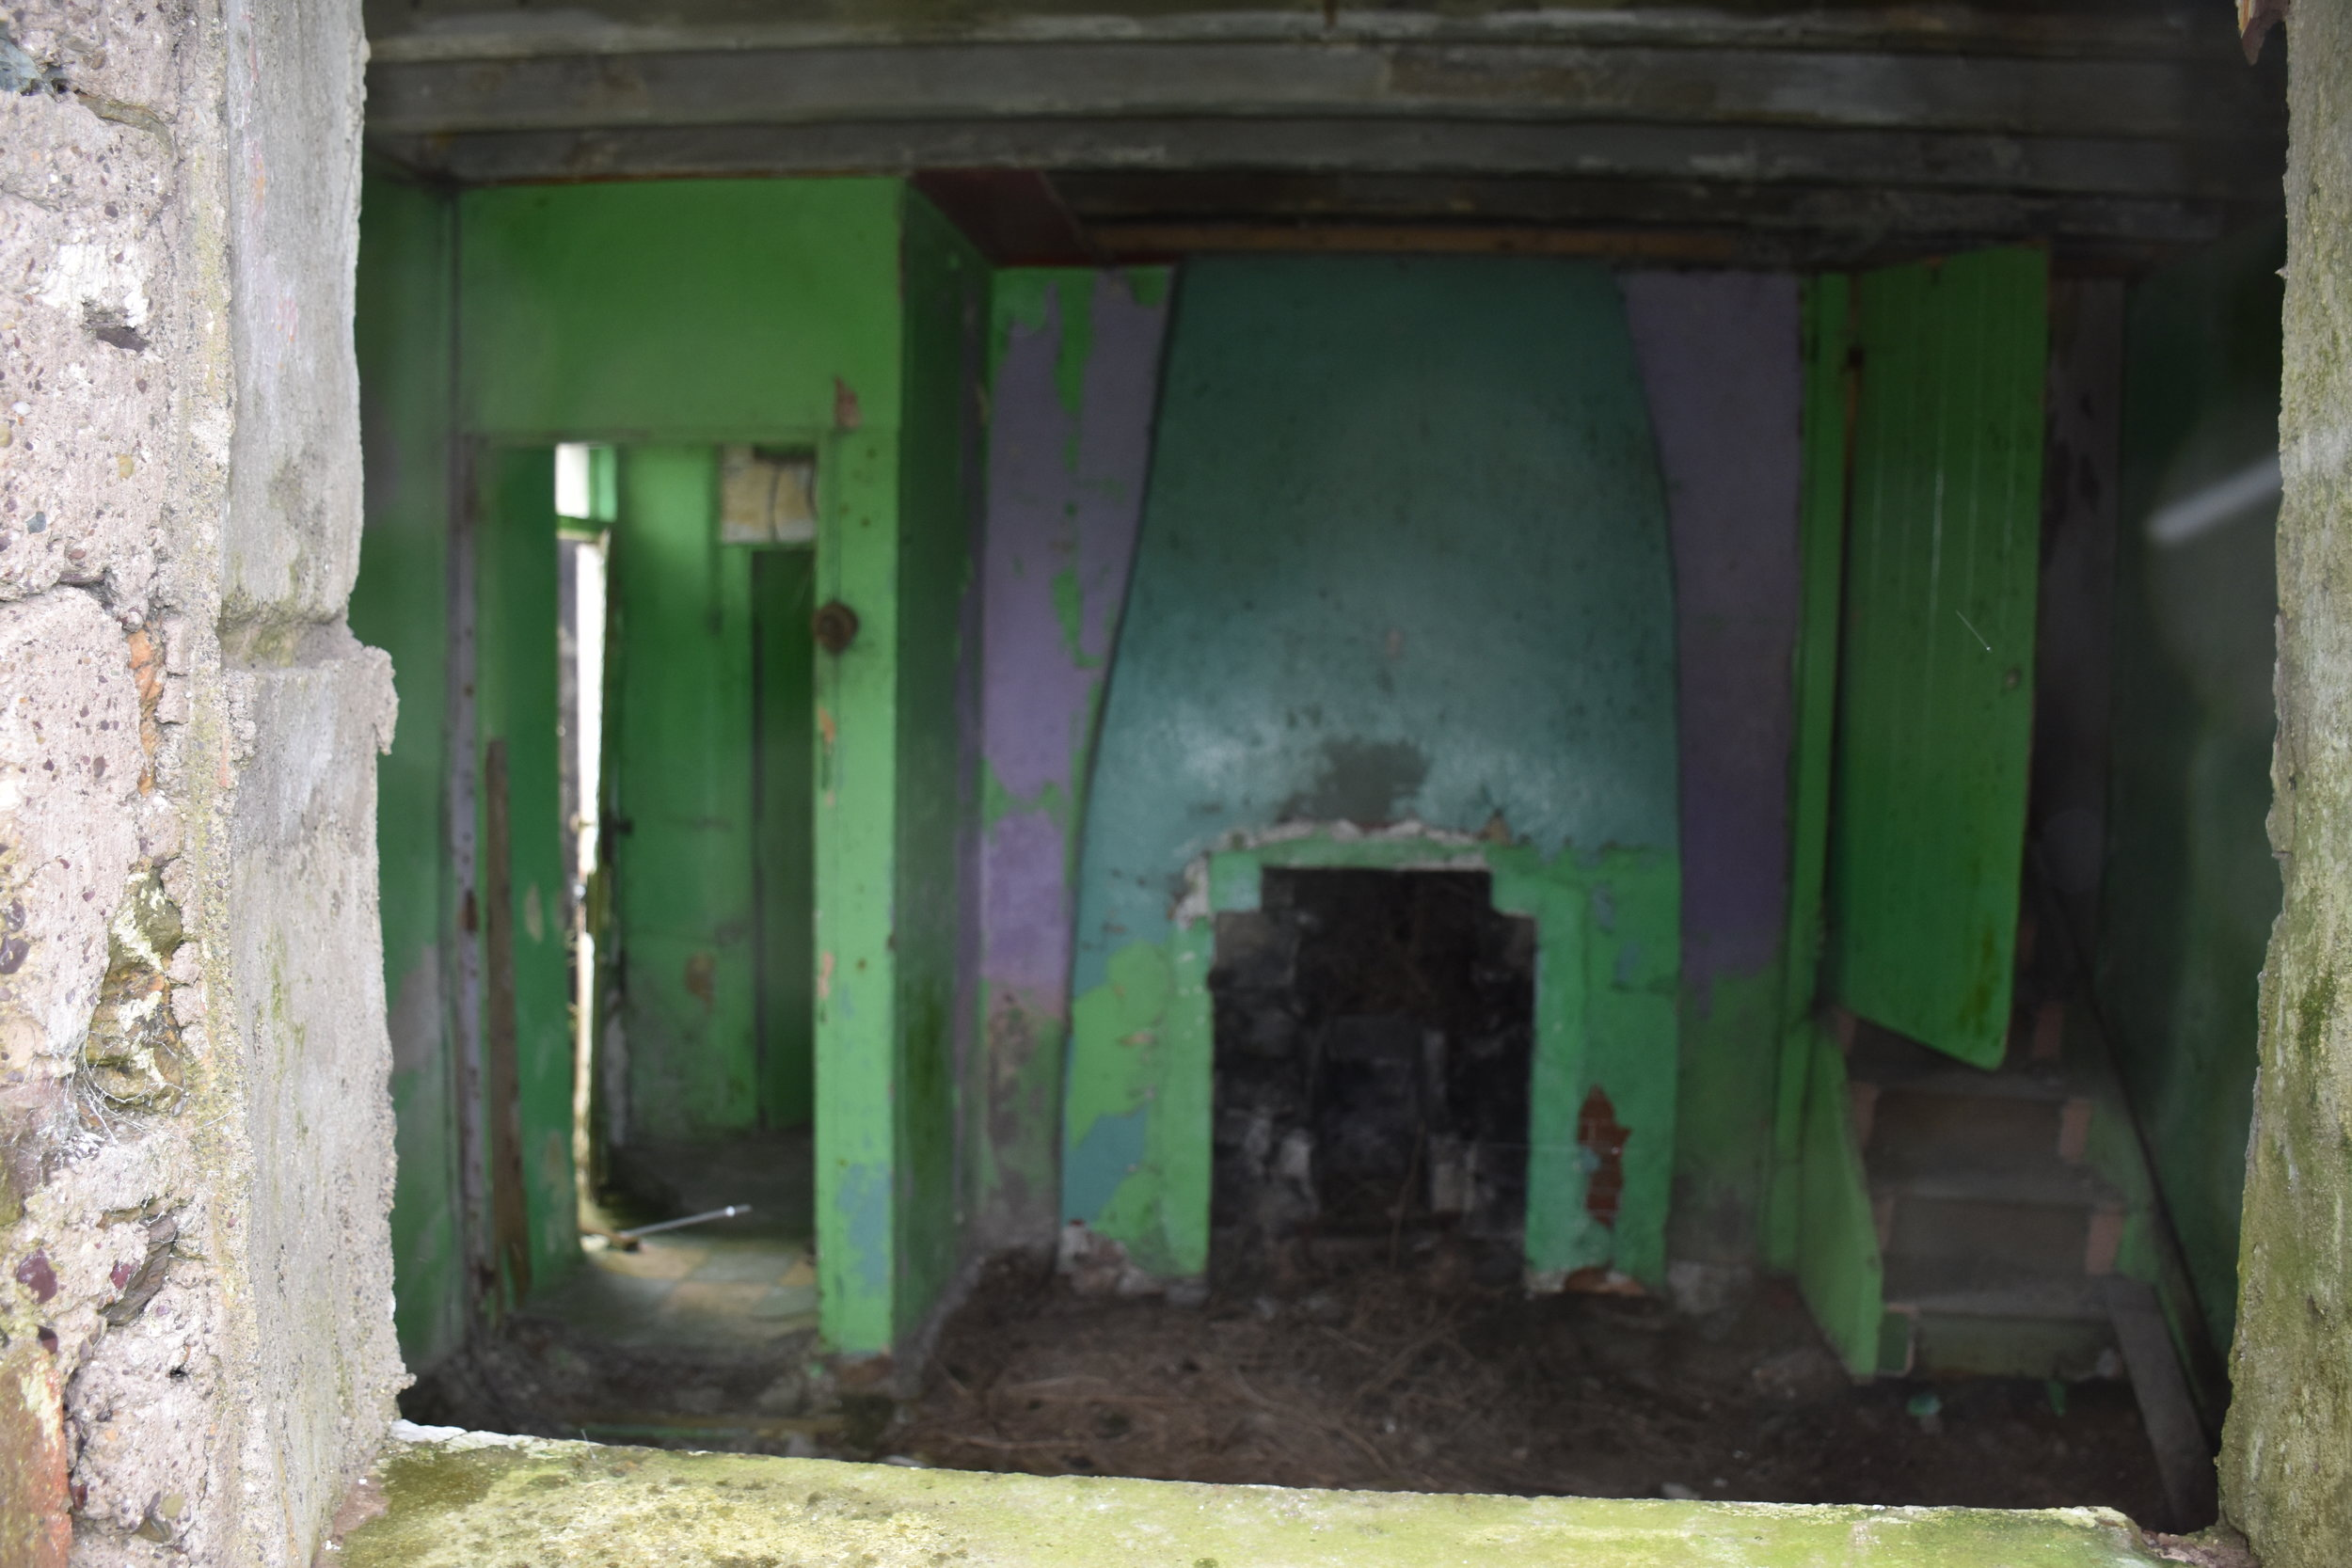 No one has been in this house for a while. The chimney curves to the left. Lavender? And 70's green?